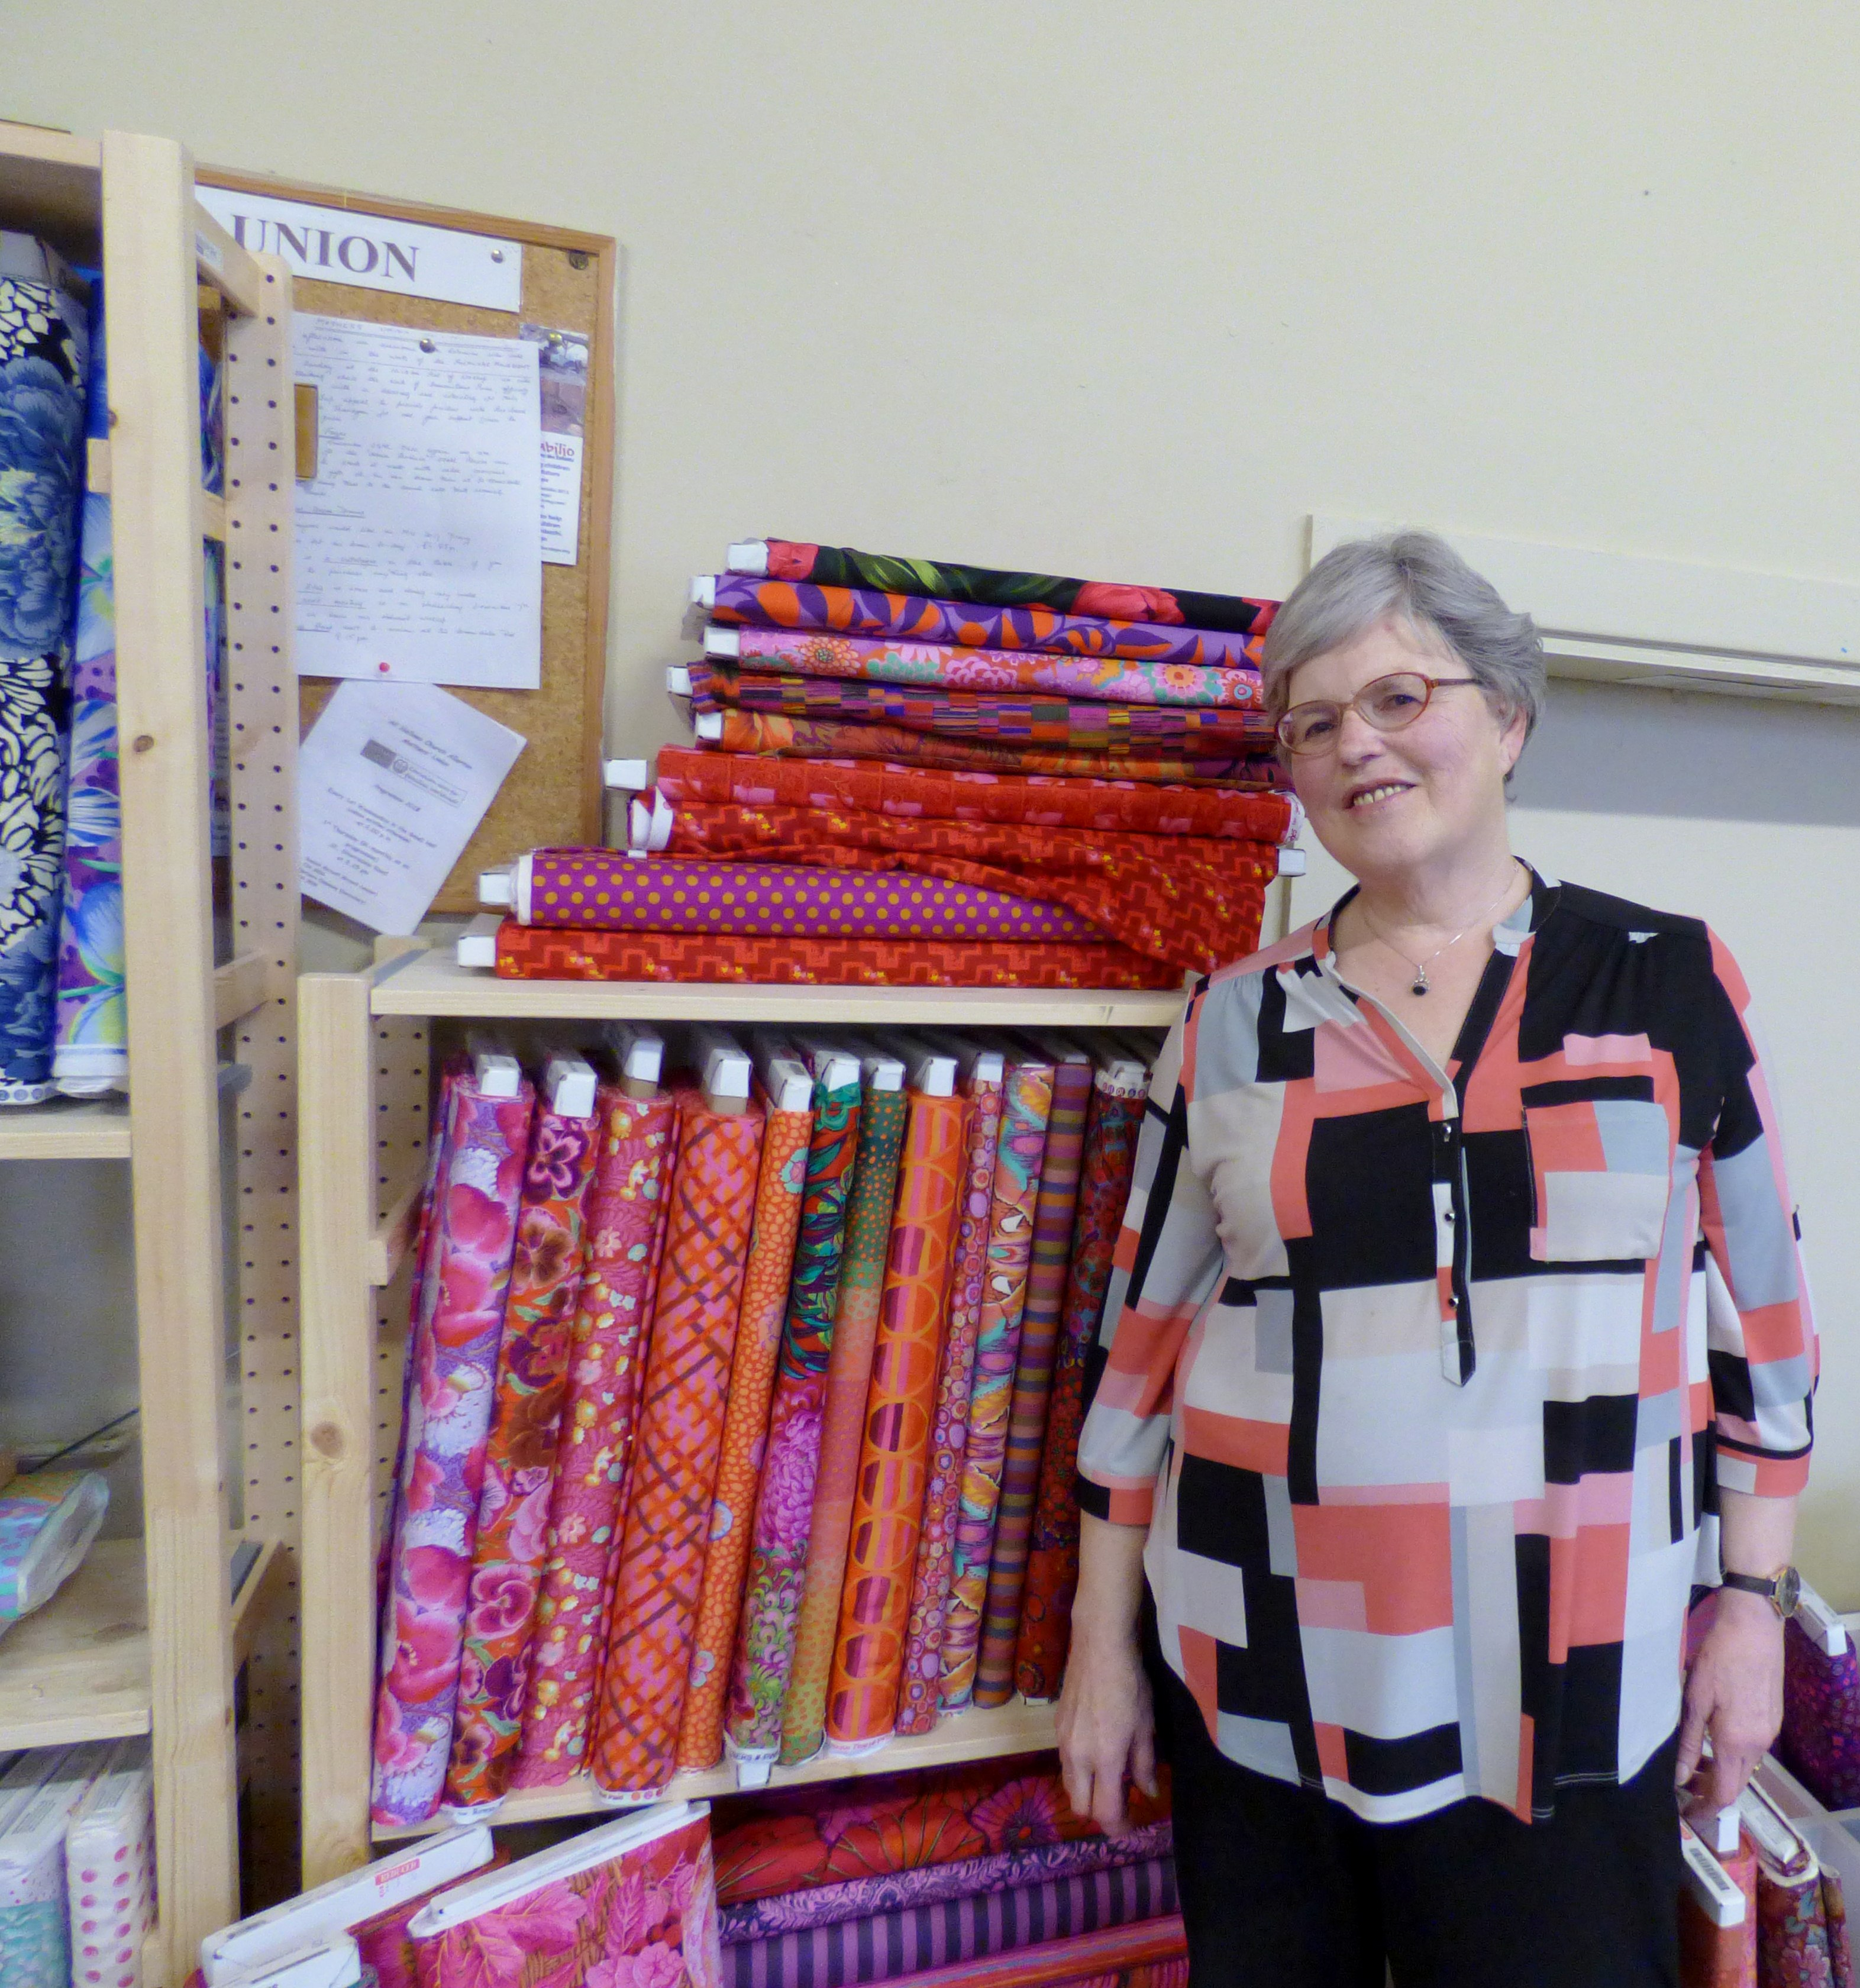 Hilary is trying to blend in with the background at Kaffe Fassett workshop, All Hallows, Dec 2016